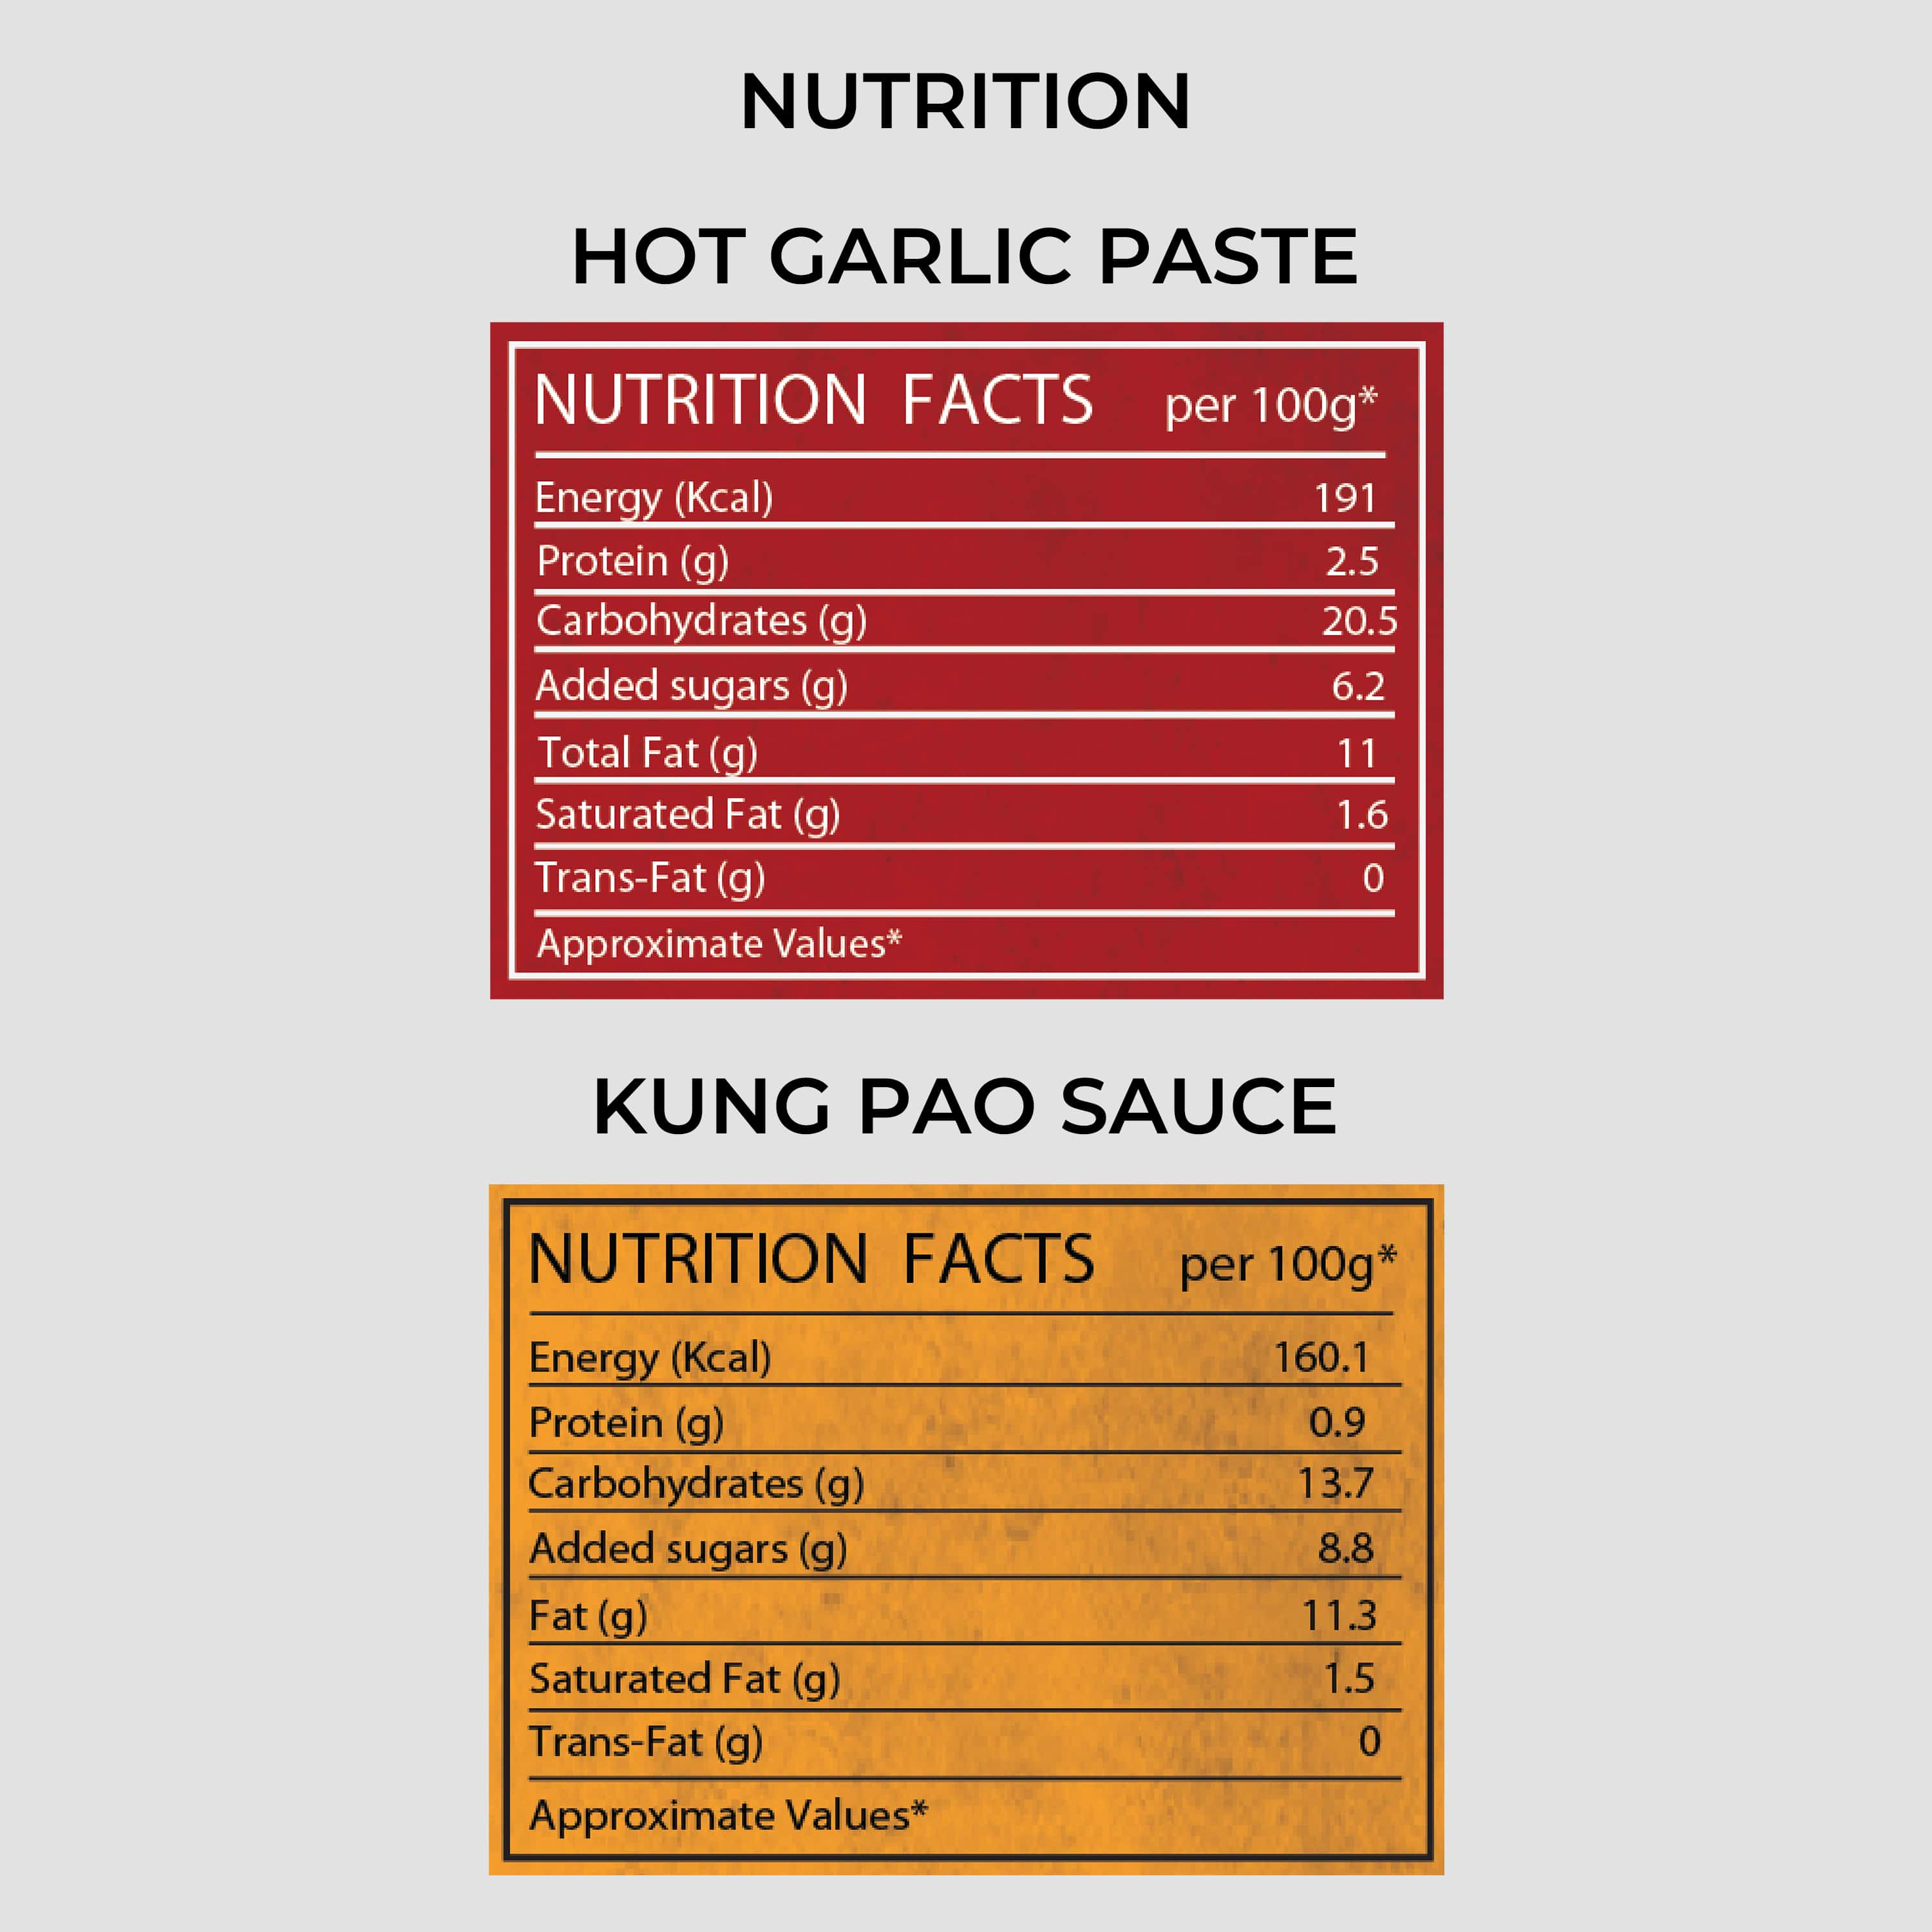 KUNG PAO SAUCE AND HOT GARLIC PASTE COMBO